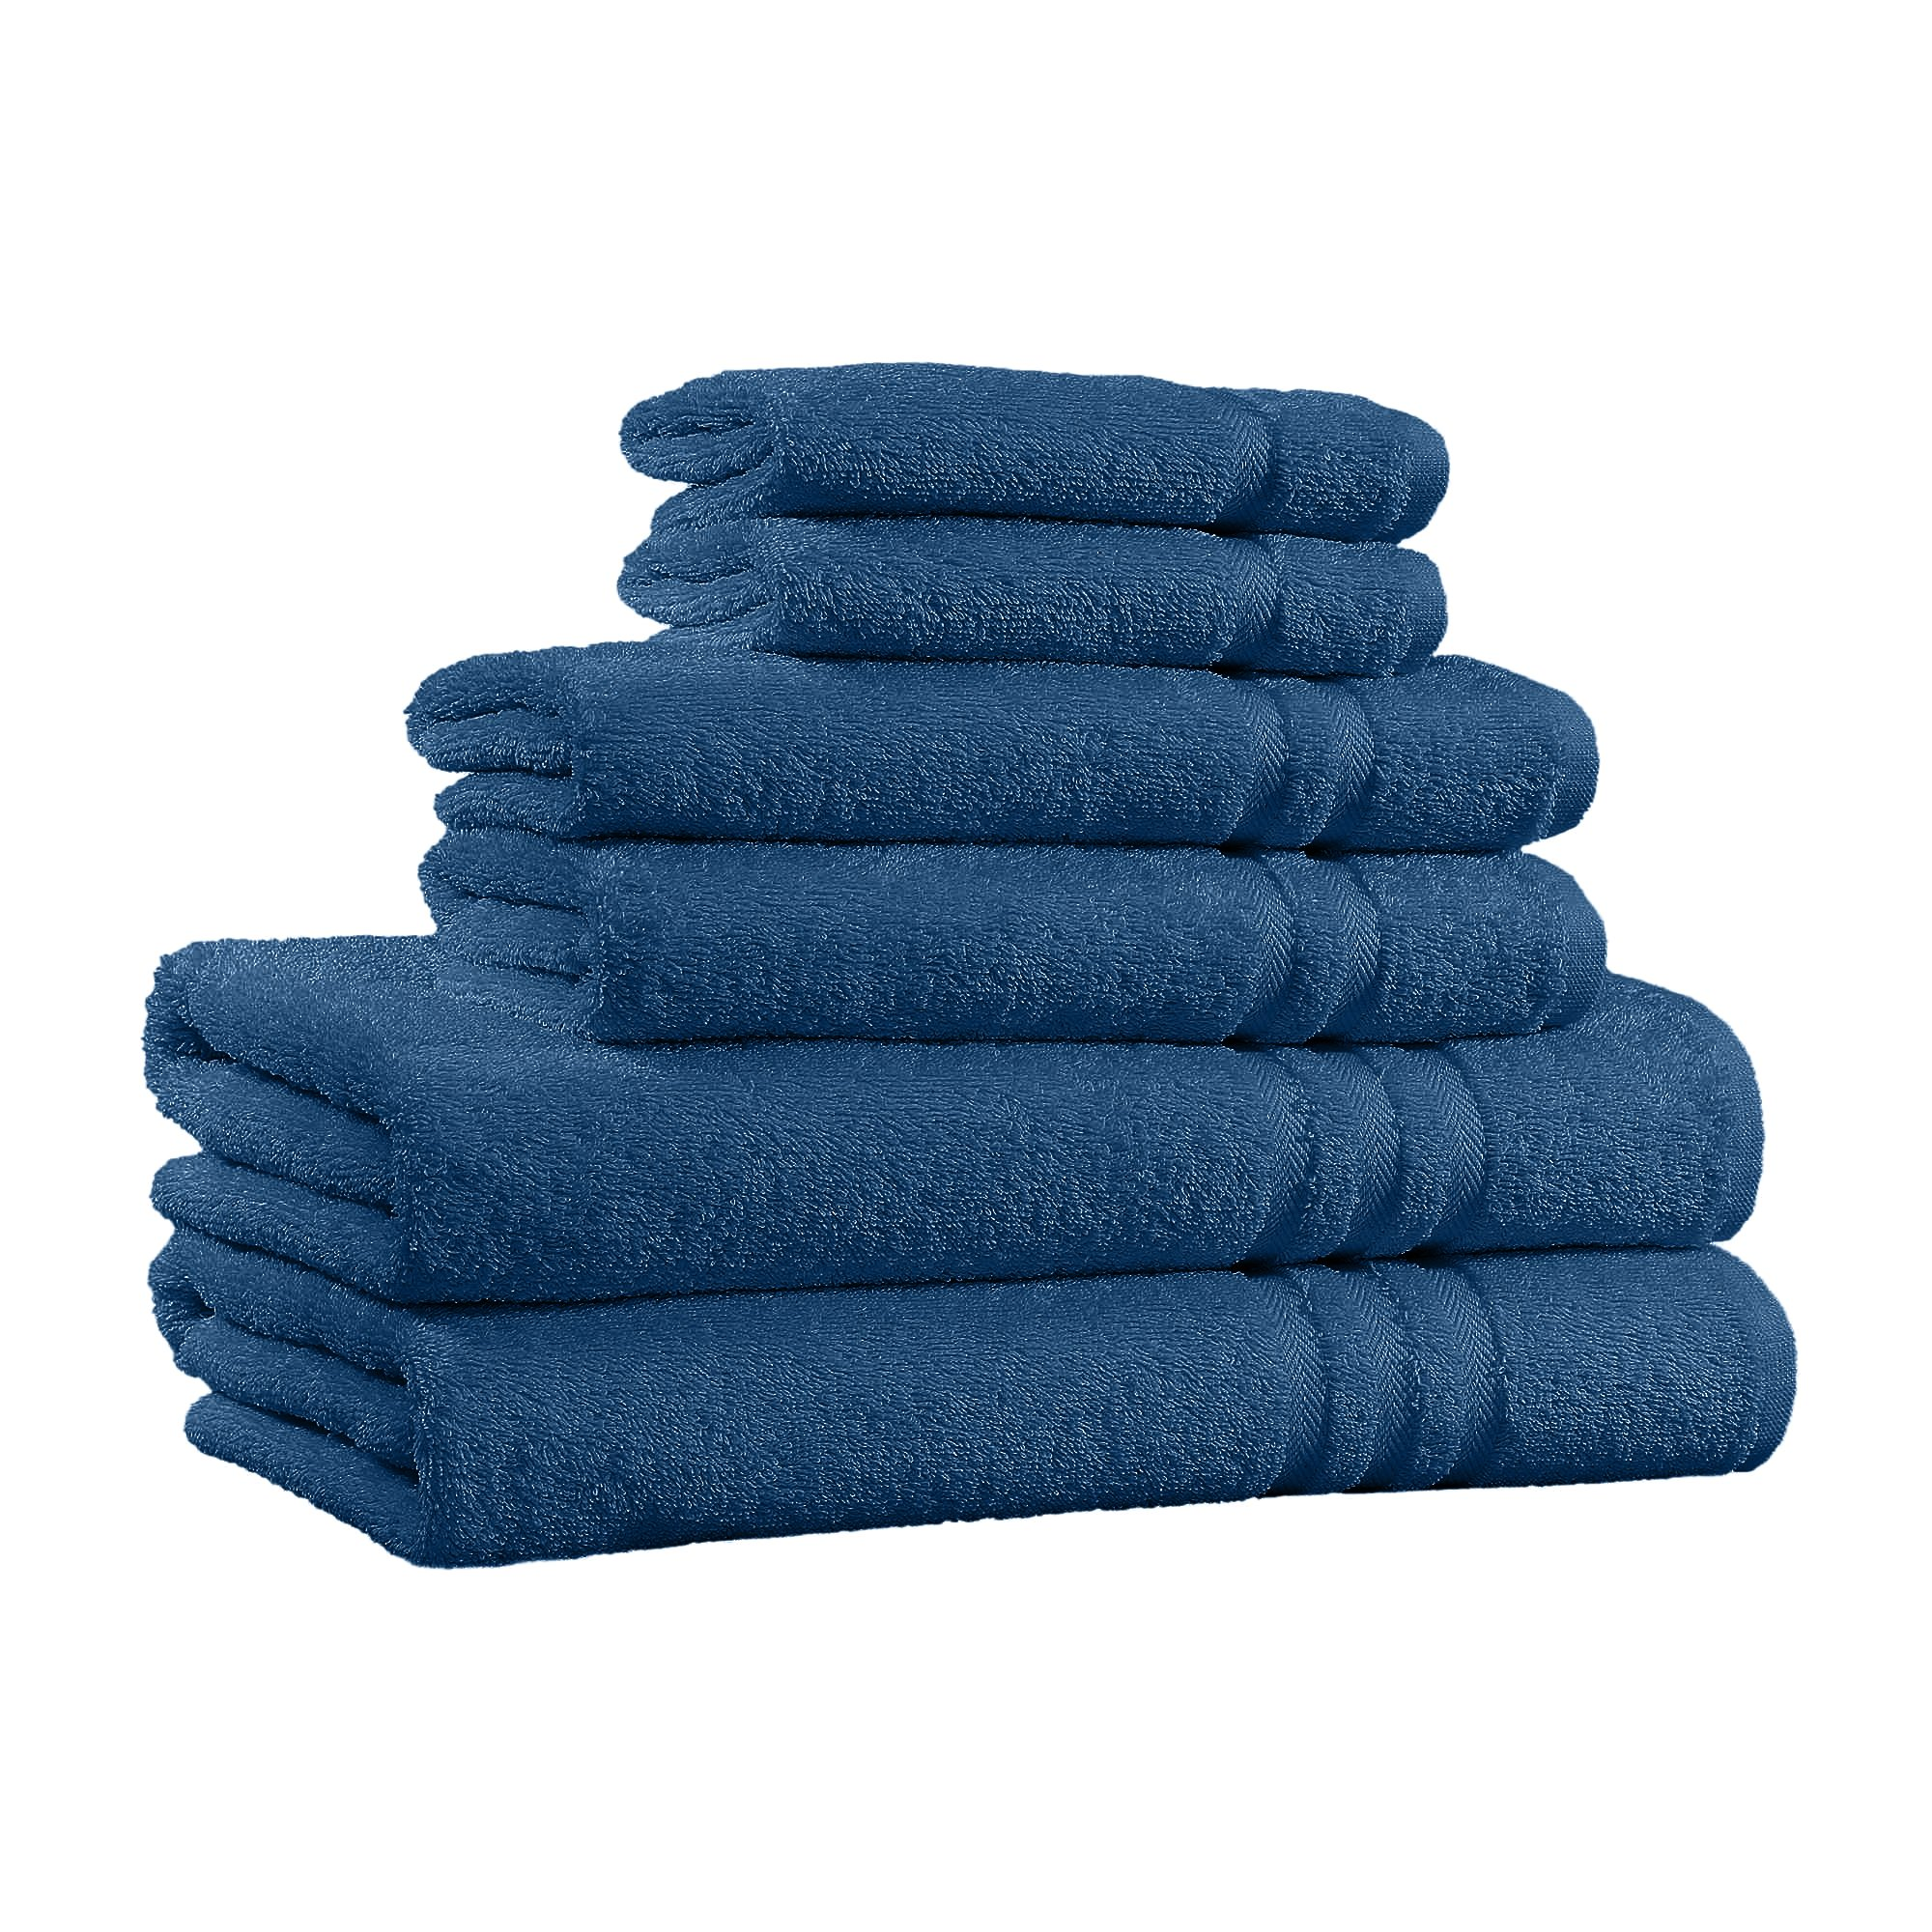 100% Cotton 6-Piece Towel Set, 2 Bath Towels, 2 Hand Towels, and 2 Washcloths, Super Soft Hotel Quality, High Absorbent Quick Dry Towel, and Fade-Resistant - 650 GSM - Made in India (Navy)